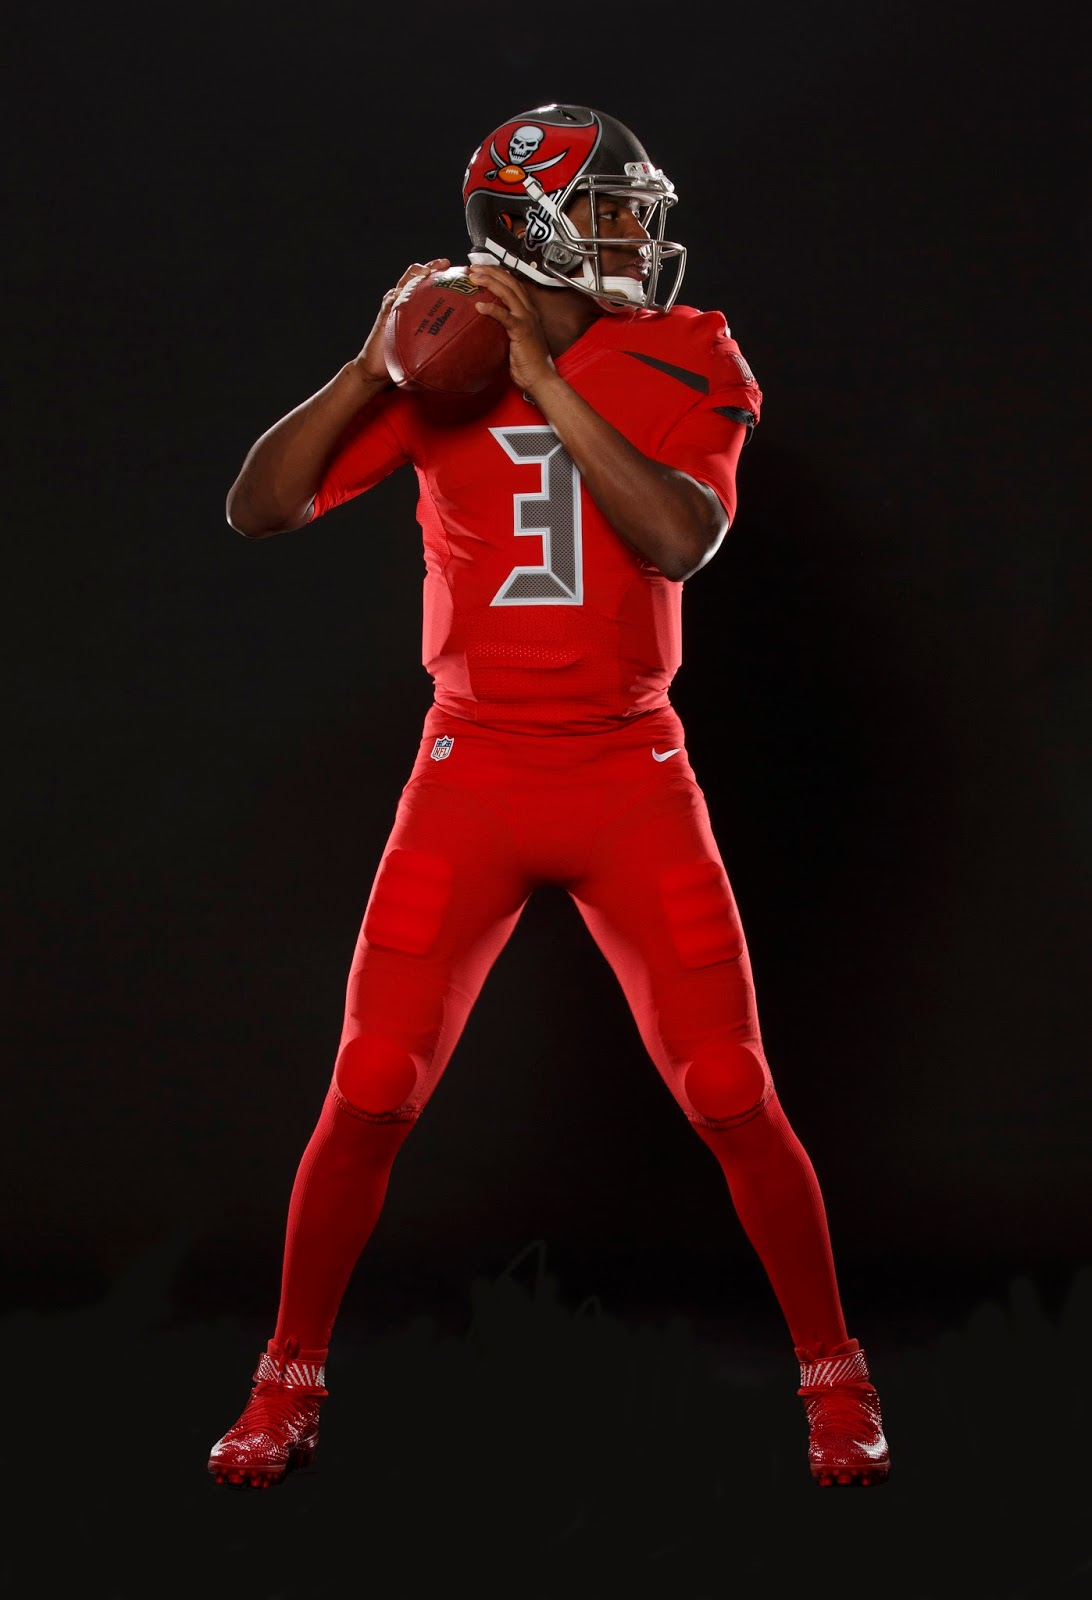 ... Limited Jersey Nike Buccaneers 34 Charles Sims White Mens NFL Pro Line  Fashion Game Jersey Credit NFL Color Rush ... 1e63828e1